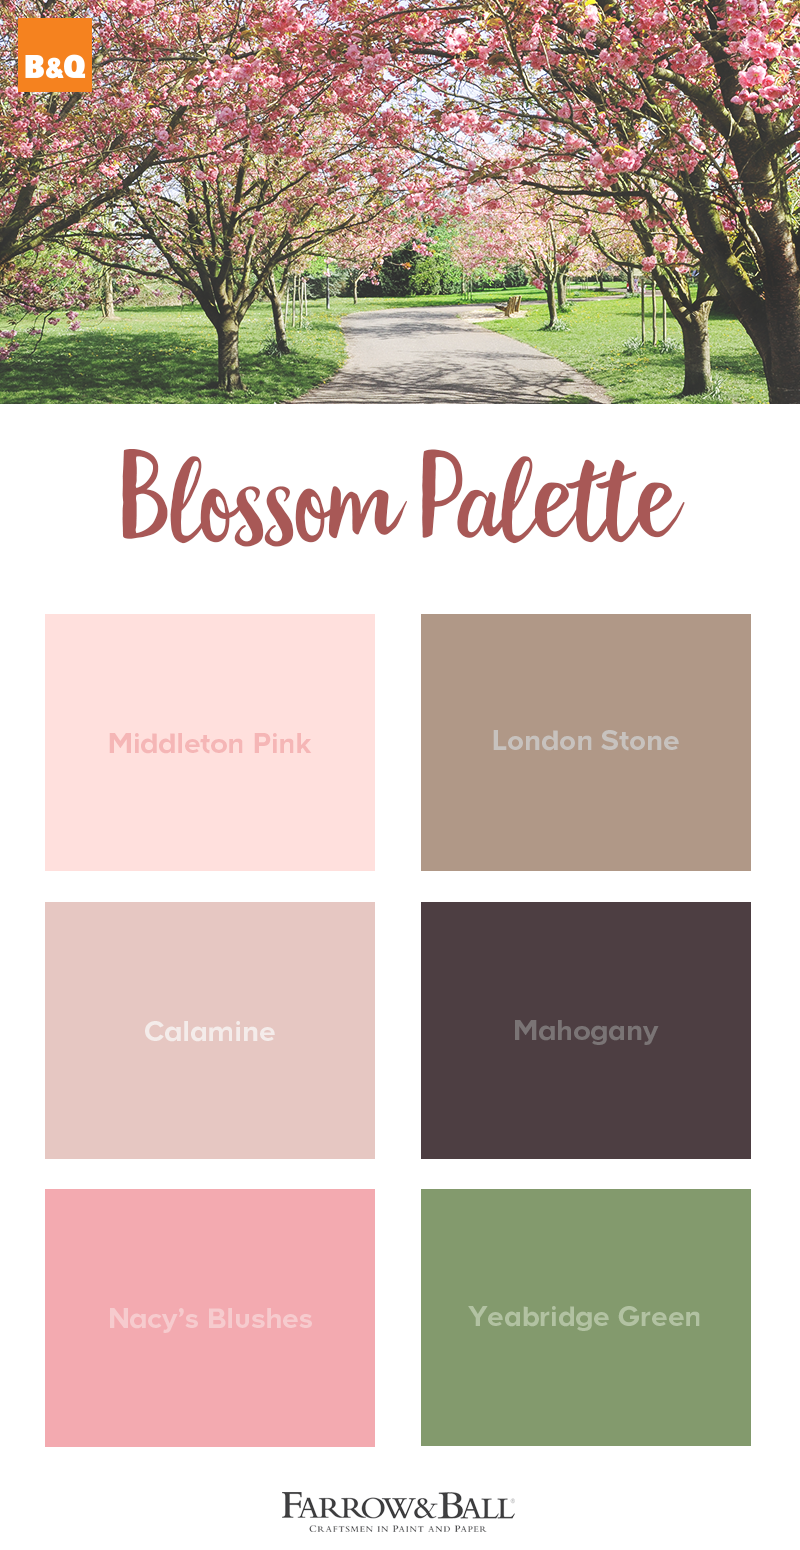 Take Inspiration From The Cherry Blossom Trees Fresh Pinks Grounded Browns And Bright Greens Cherry Blossom Bedroom Green Decor Farrow And Ball Paint